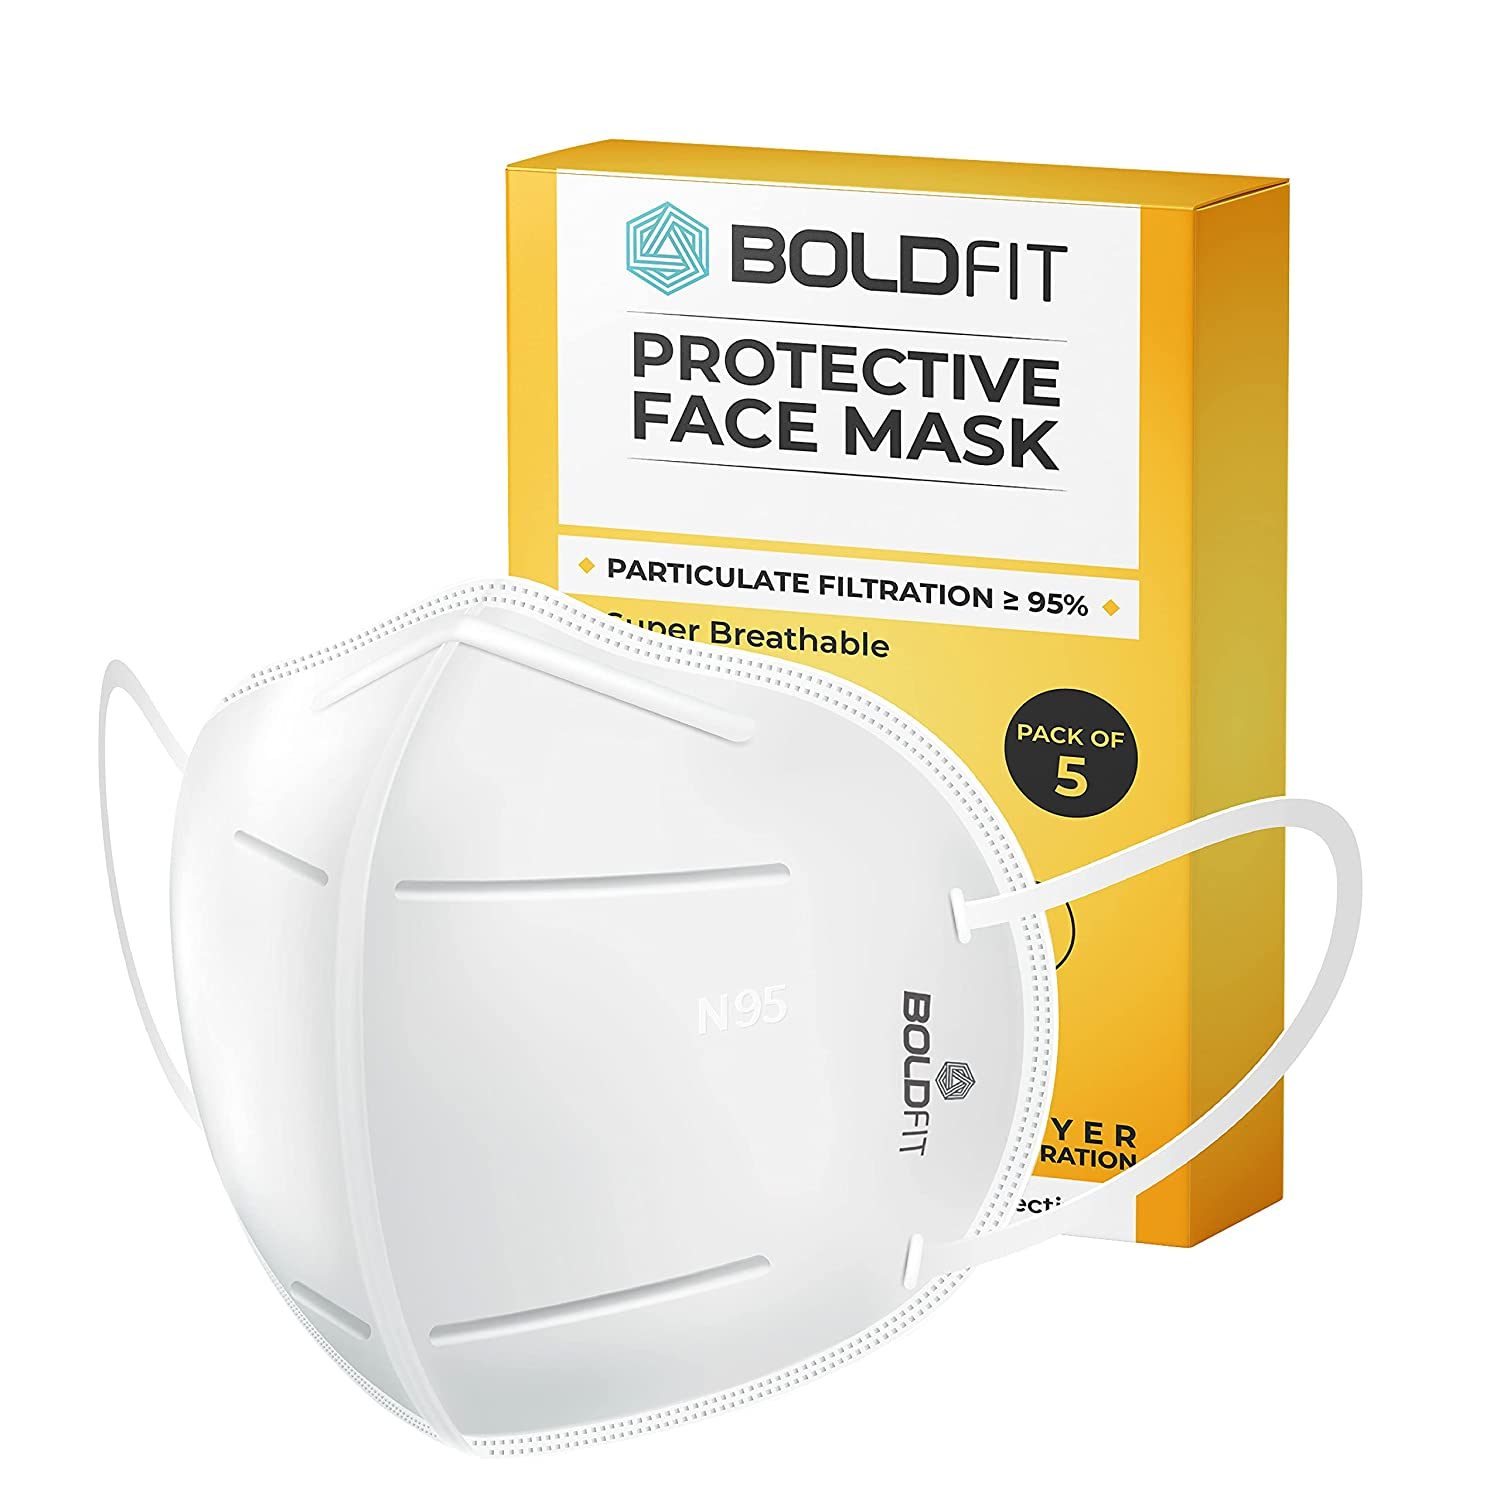 Boldfit N95 mask for face (Pack of 10) Anti Pollution, protective. les